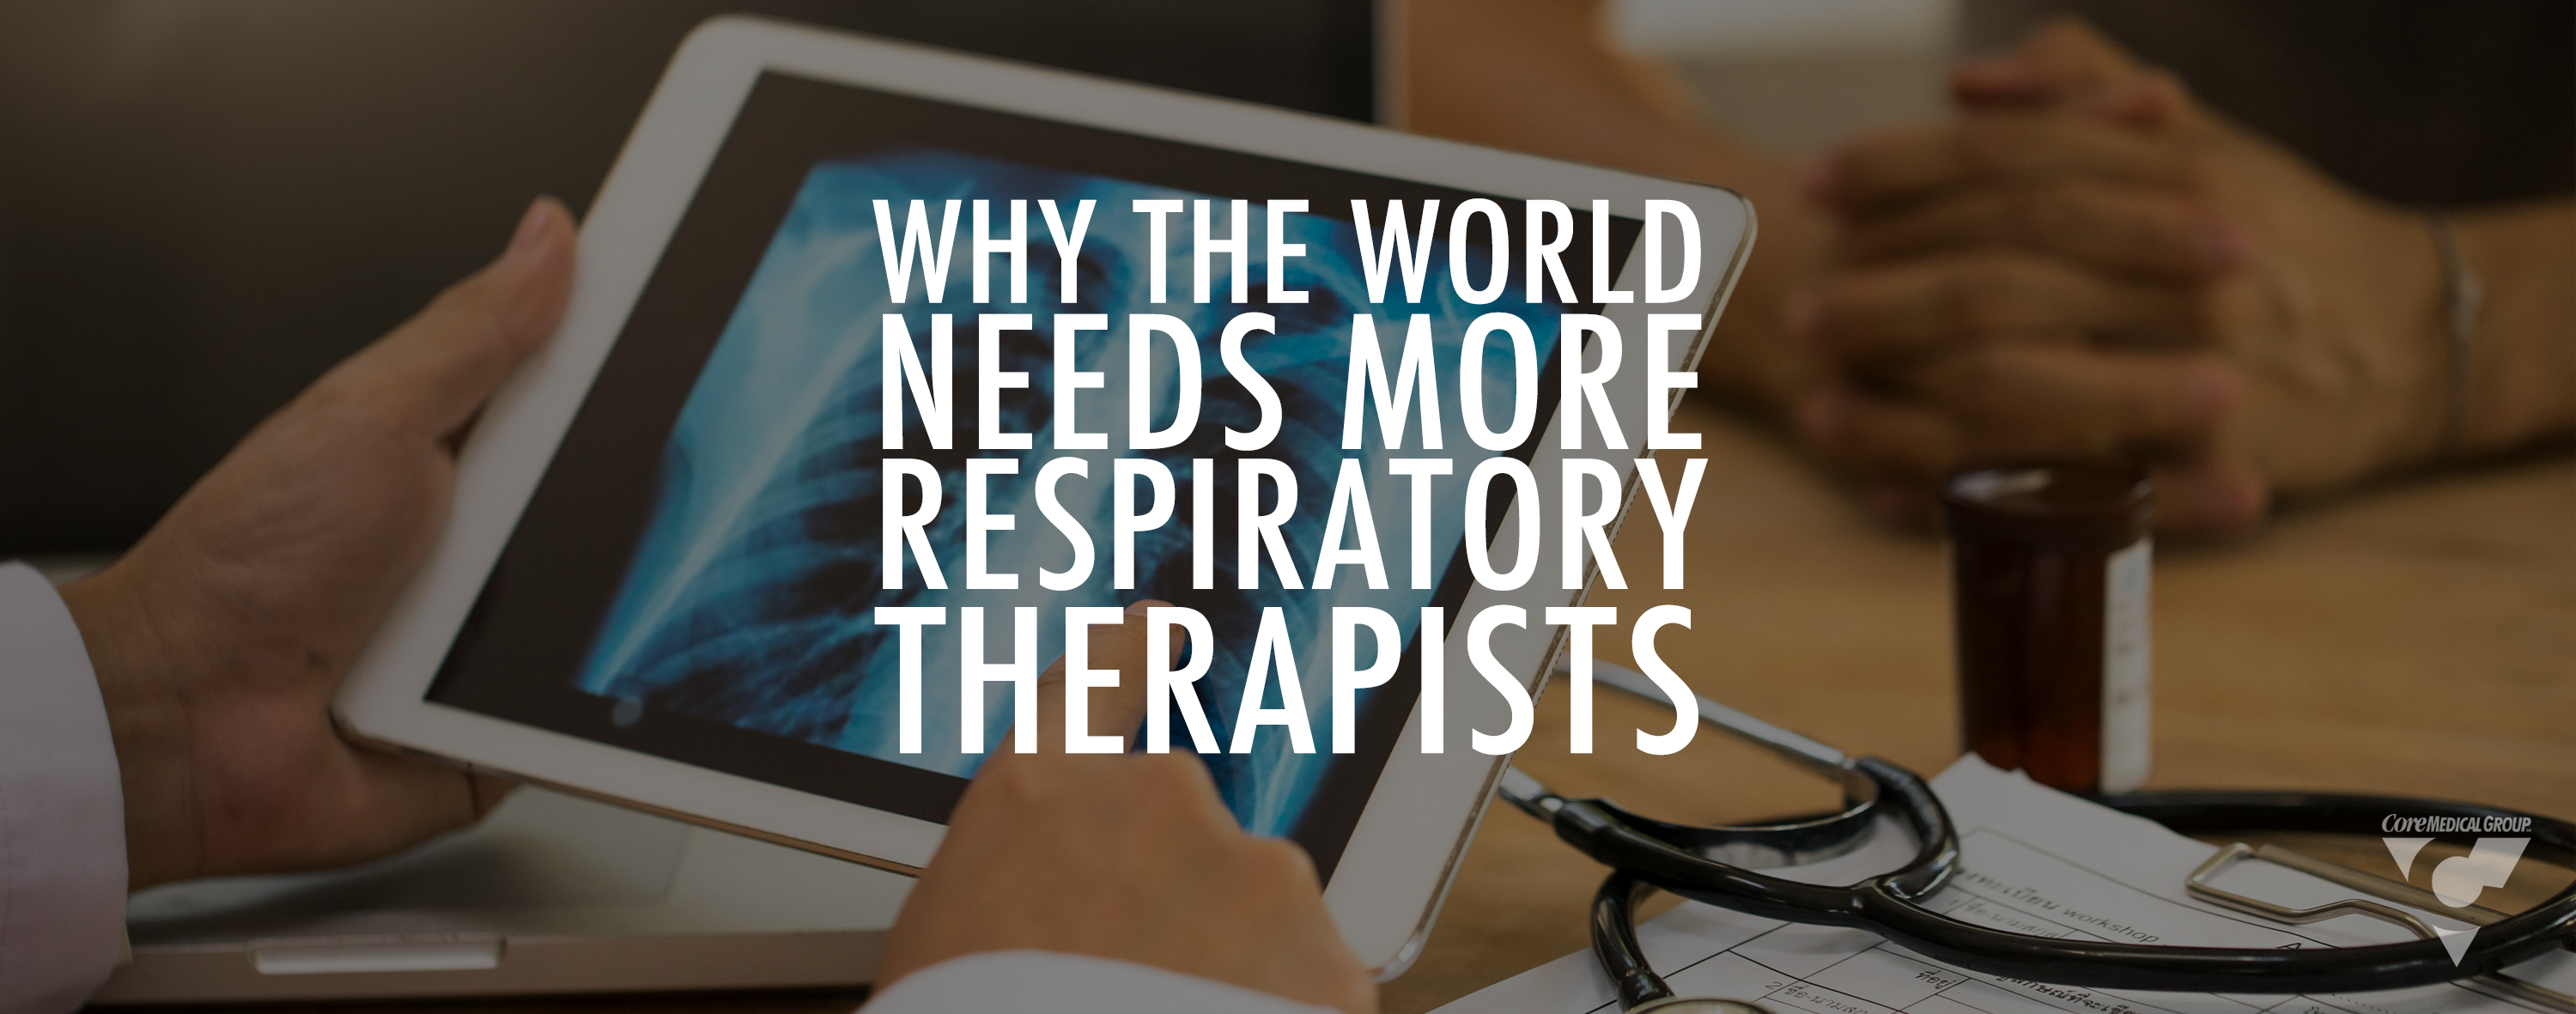 Why the World Needs More Respiratory Therapists